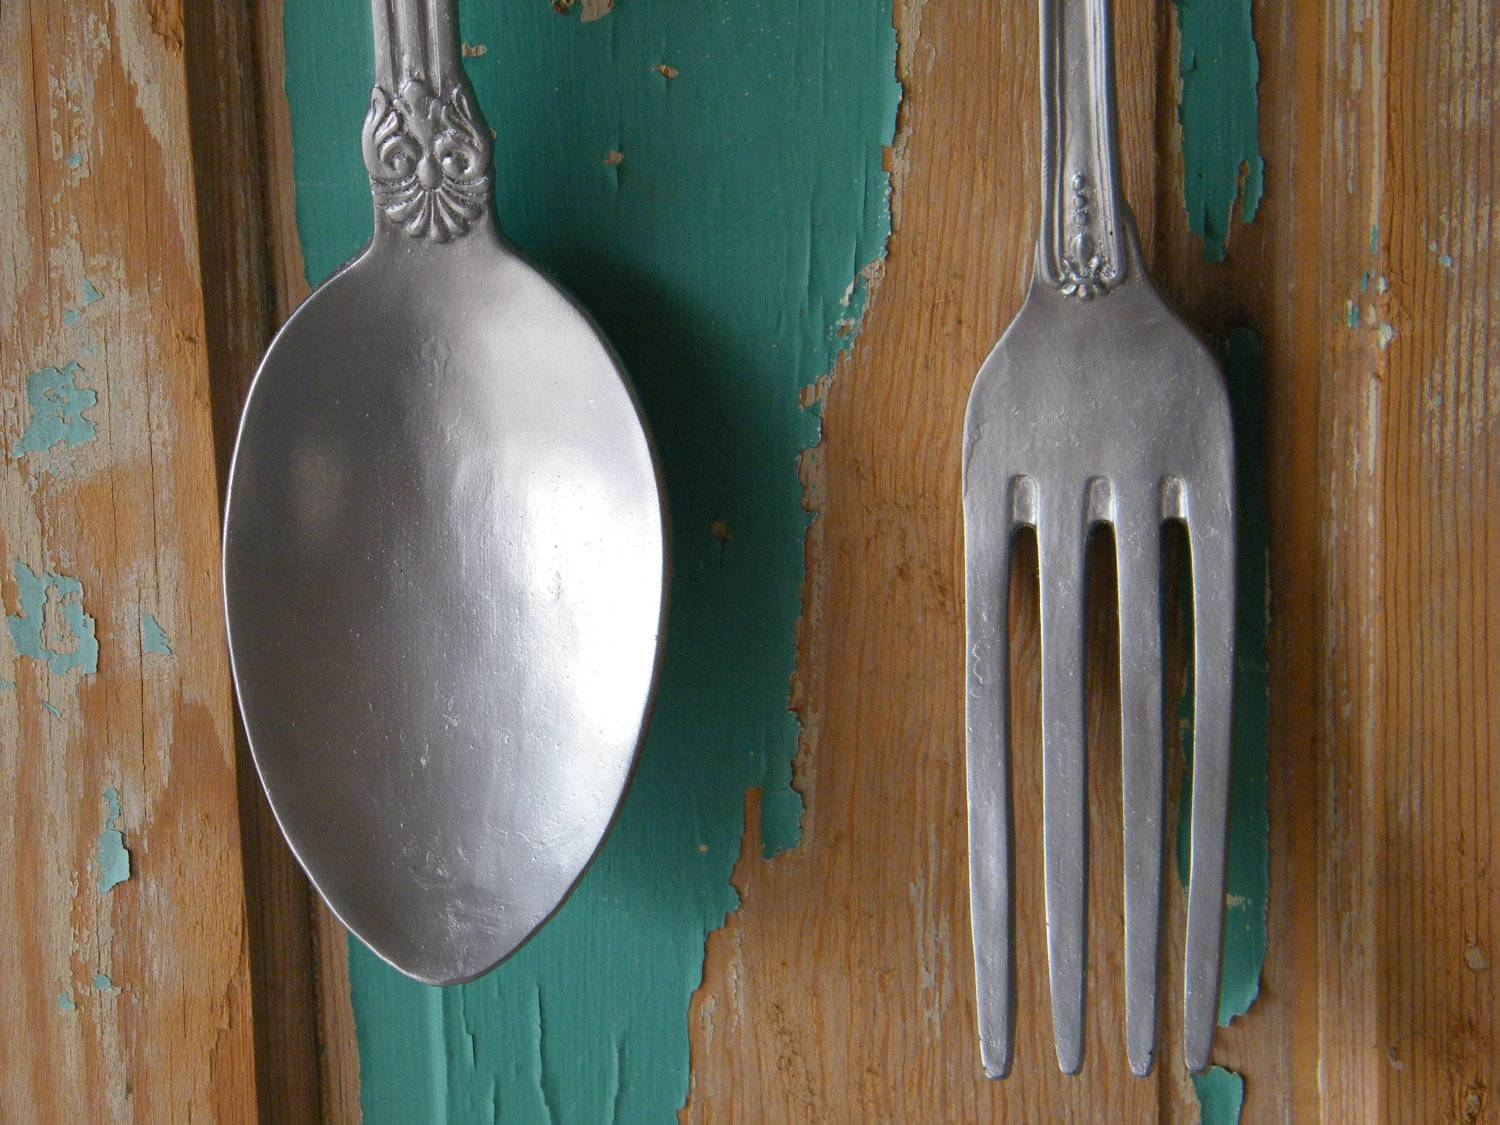 Interesting Decoration Large Fork And Spoon Wall Decor Vibrant Inside Current Big Spoon And Fork Wall Decor (View 19 of 30)